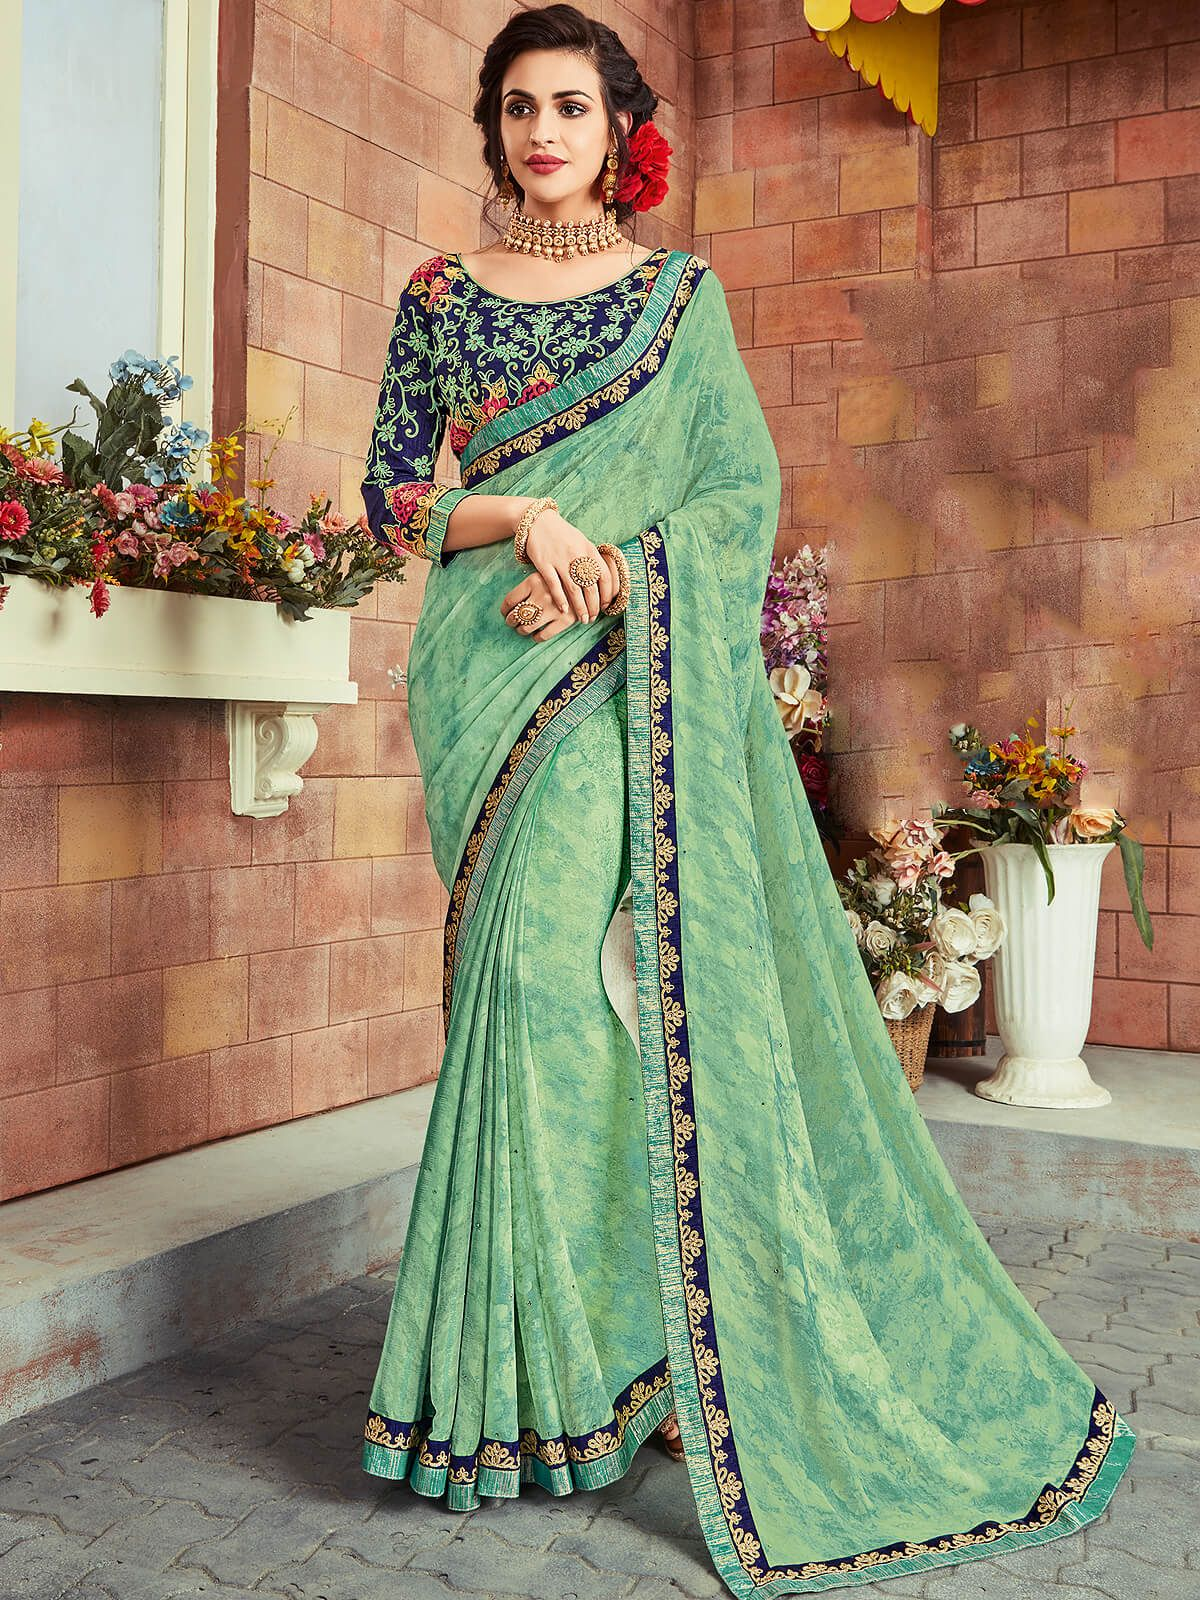 81d775f0b9d5ed Sparky turquoise and navy blue georgette festival wear designer saree.  Having fabric georgette and raw silk. This gorgeous saree is displaying  some ...